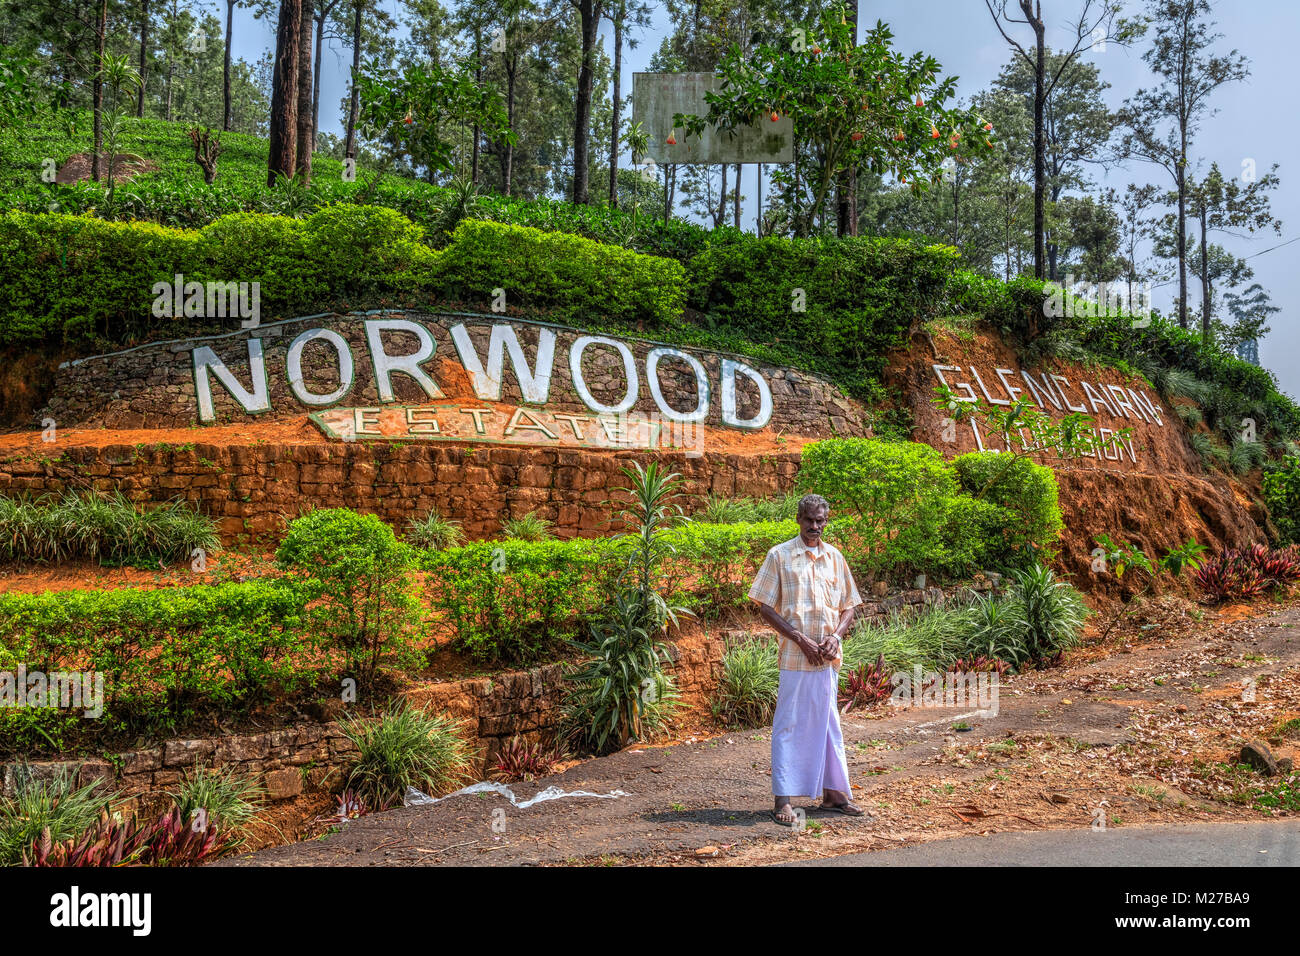 norwood asian personals Norwood sawmills is the leading global manufacturer of portable sawmills and mobile forestry equipment click or call 1-800-567-0404 to learn more.